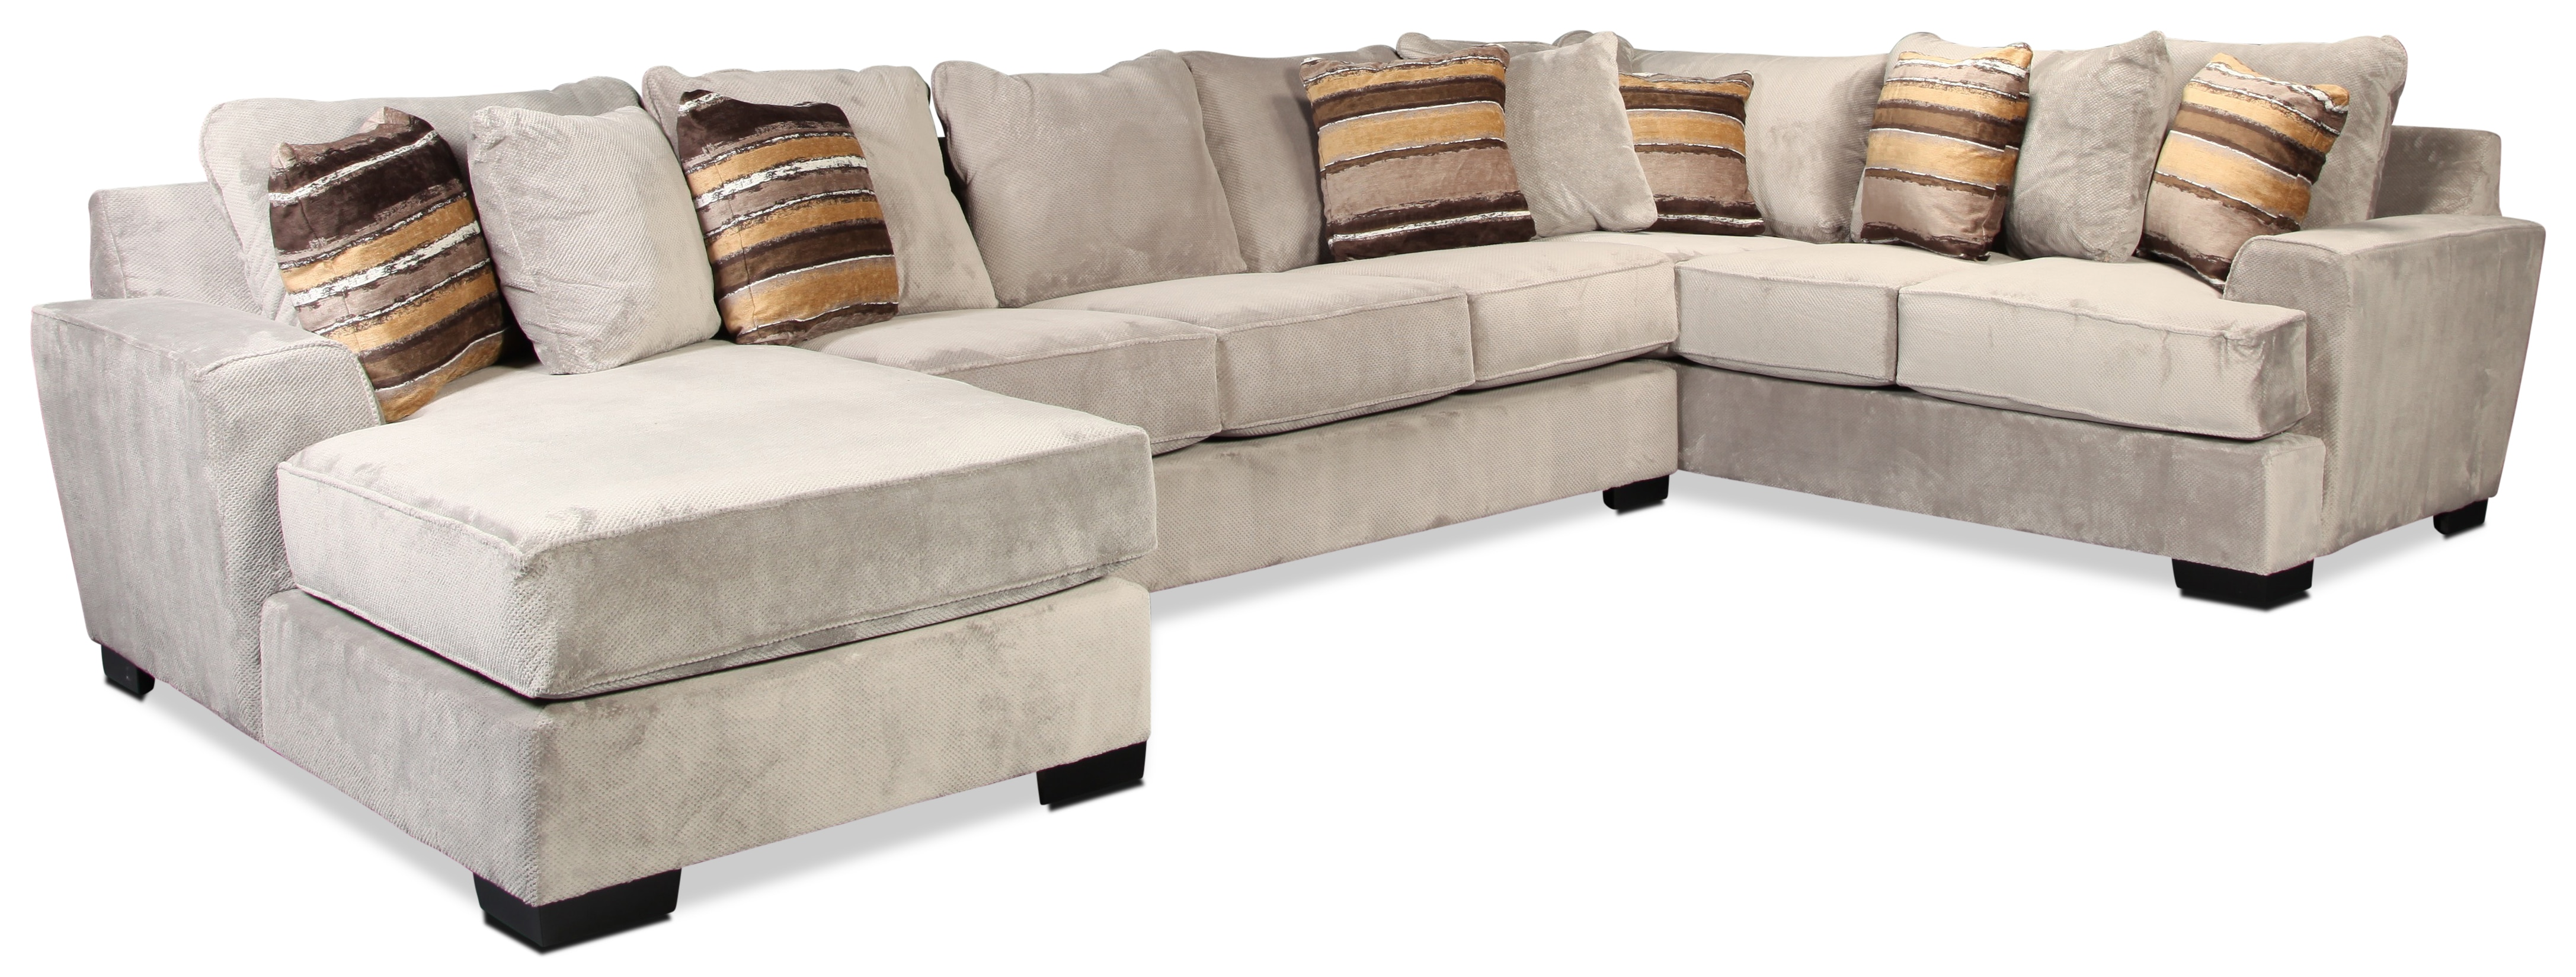 Living Room Furniture - Serendipity 3 Piece Sectional